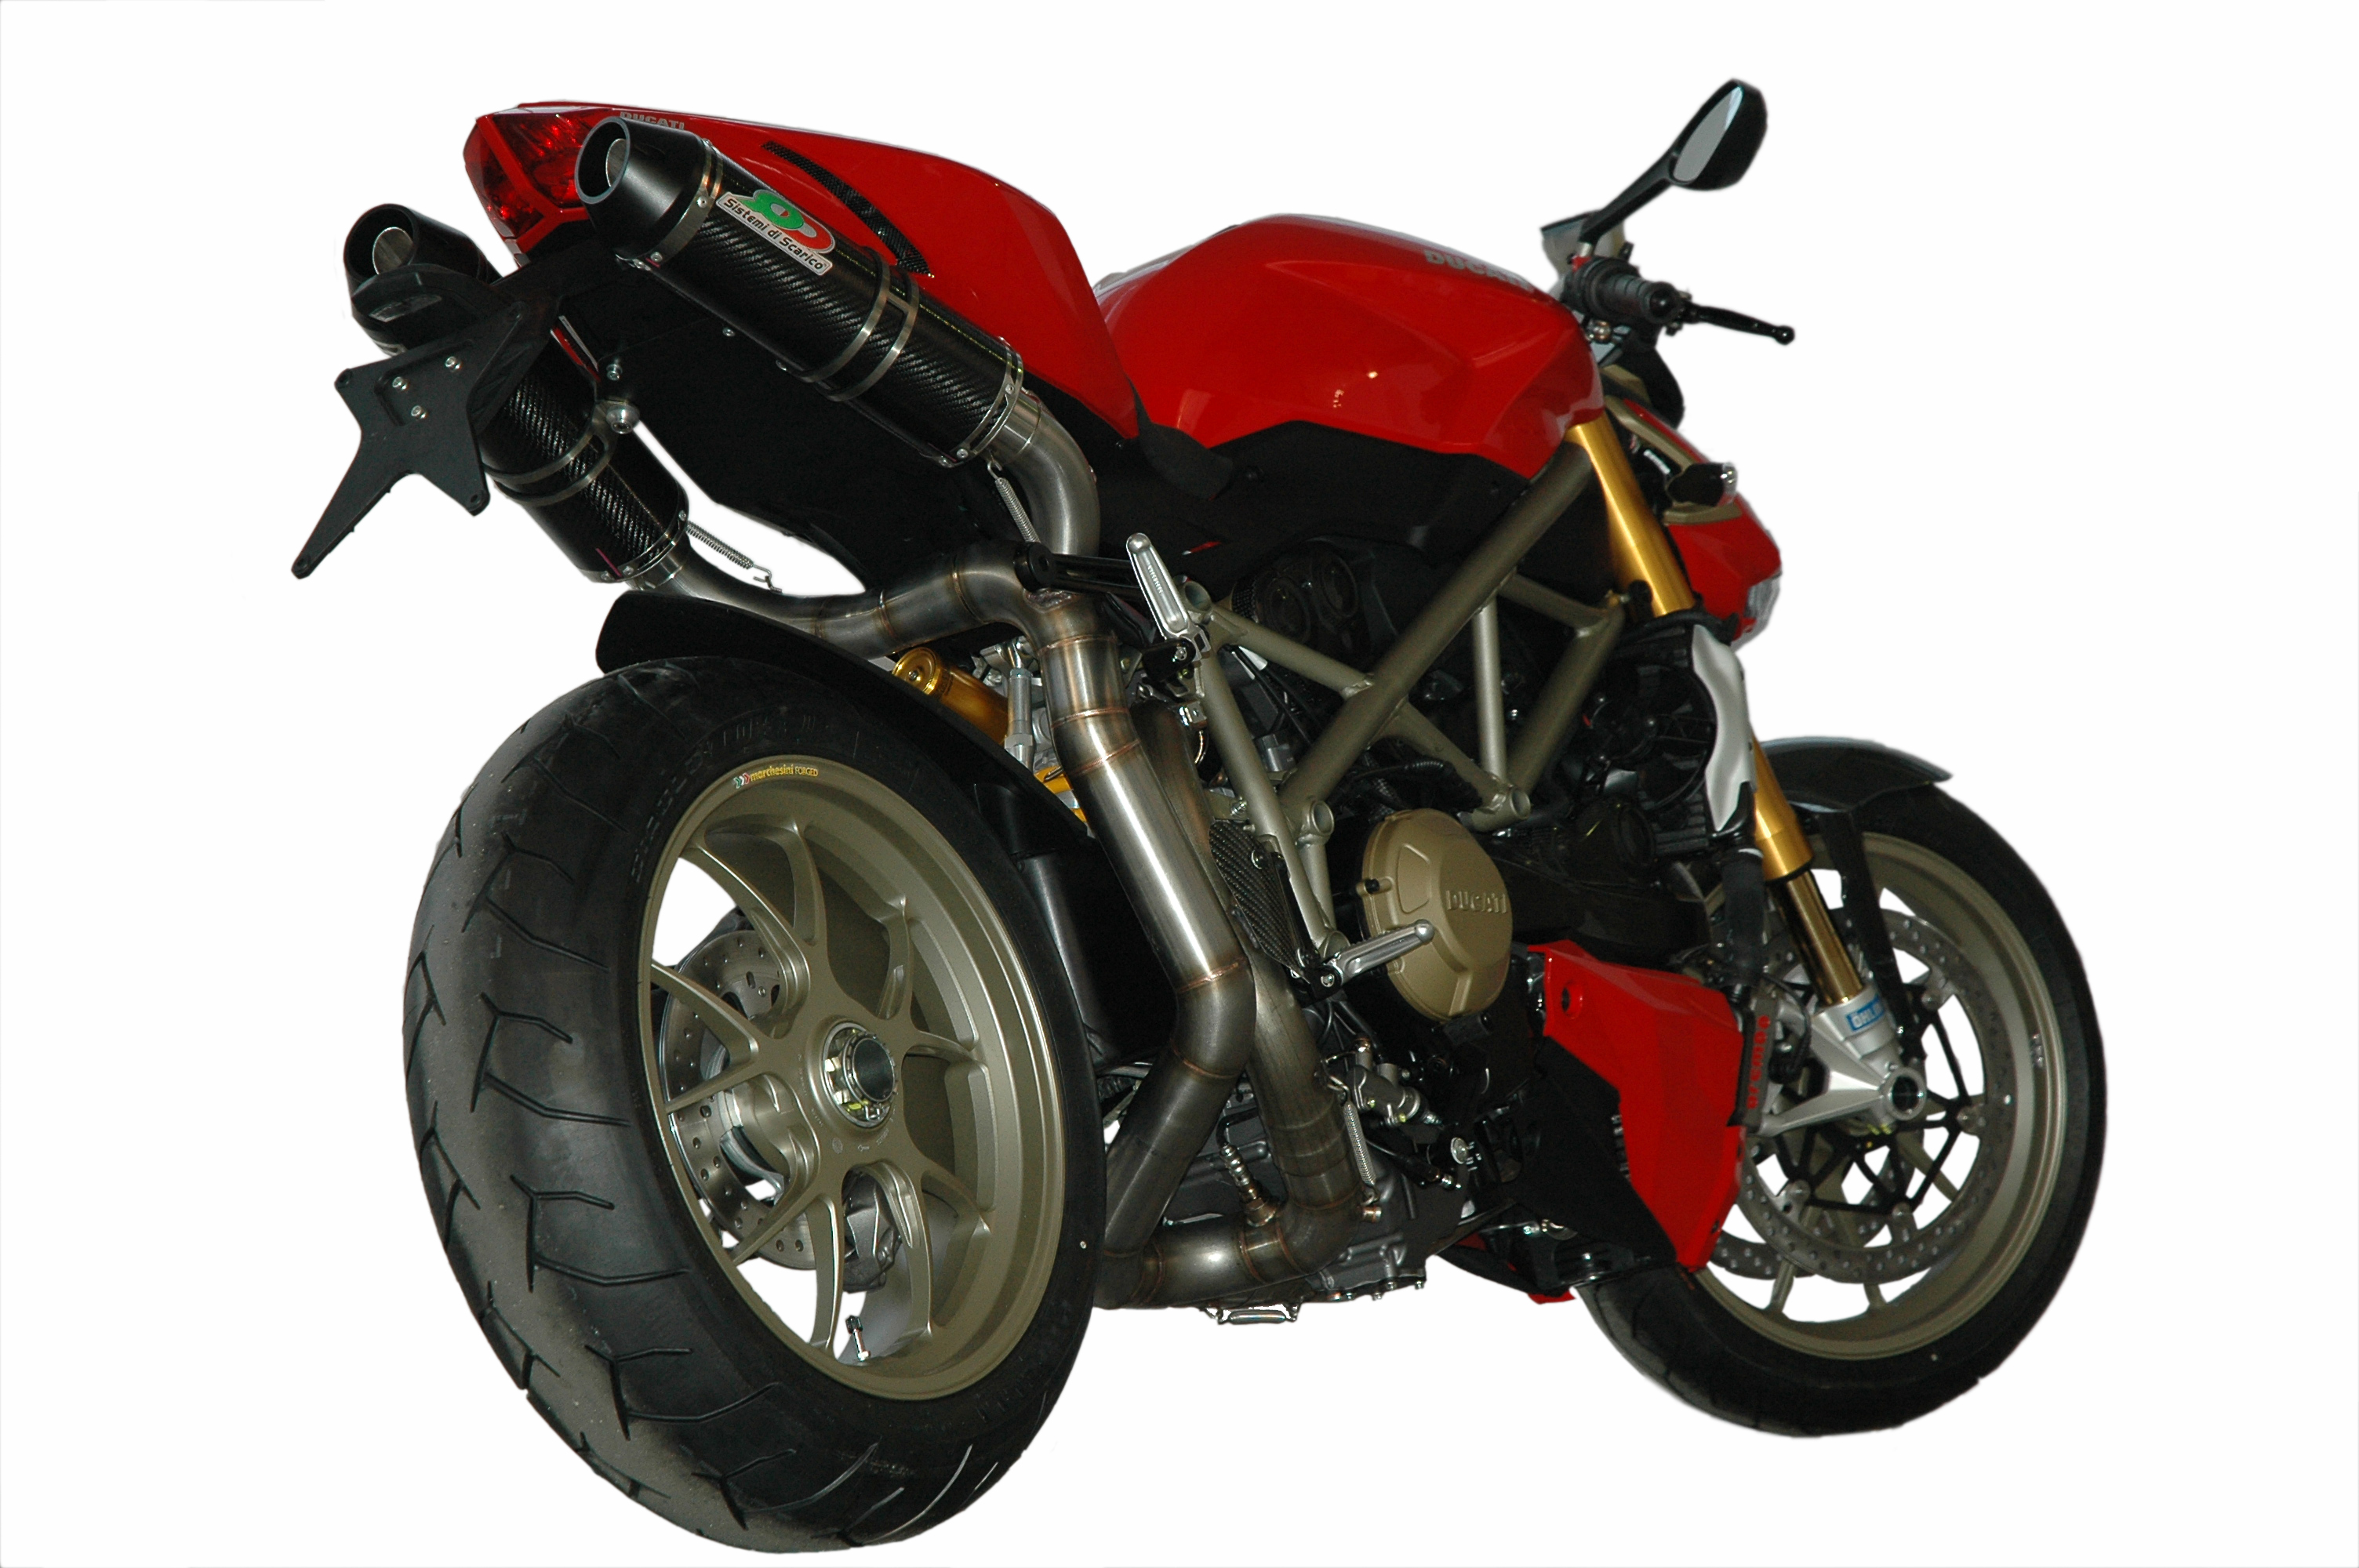 Ducati Streetfighter 848 1098, full exhaust system underseat mufflers - QD Exhaust